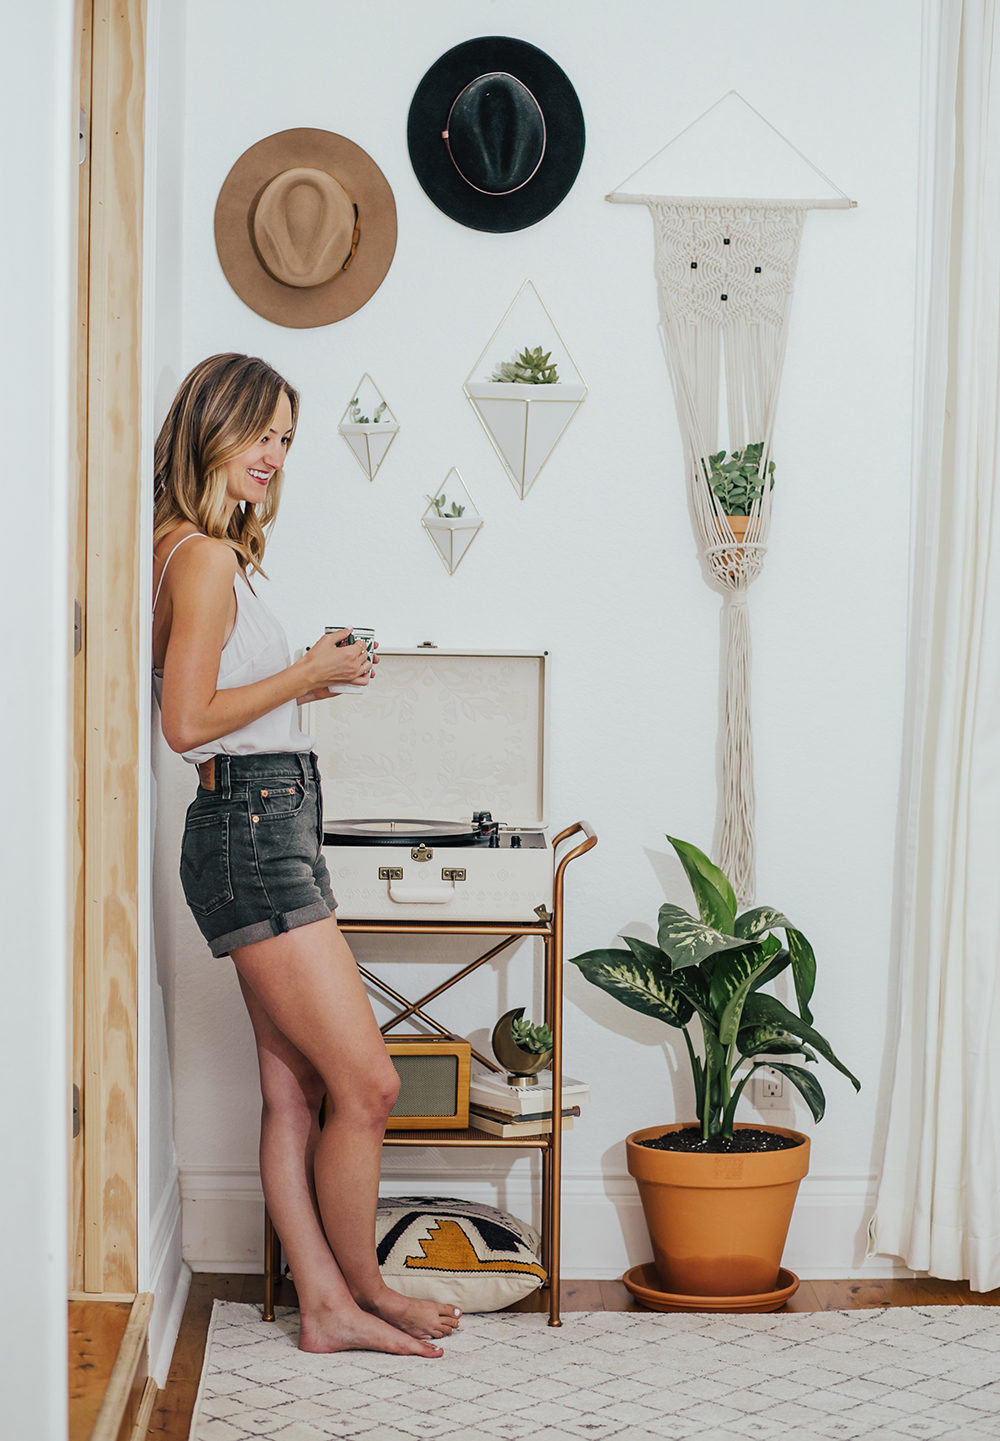 livvyland-blog-olivia-watson-austin-texas-fashion-blogger-urban-outfitters-record-player-nook-room-setup-holder-interior-boho-style-levis-wedgie-shorts-6